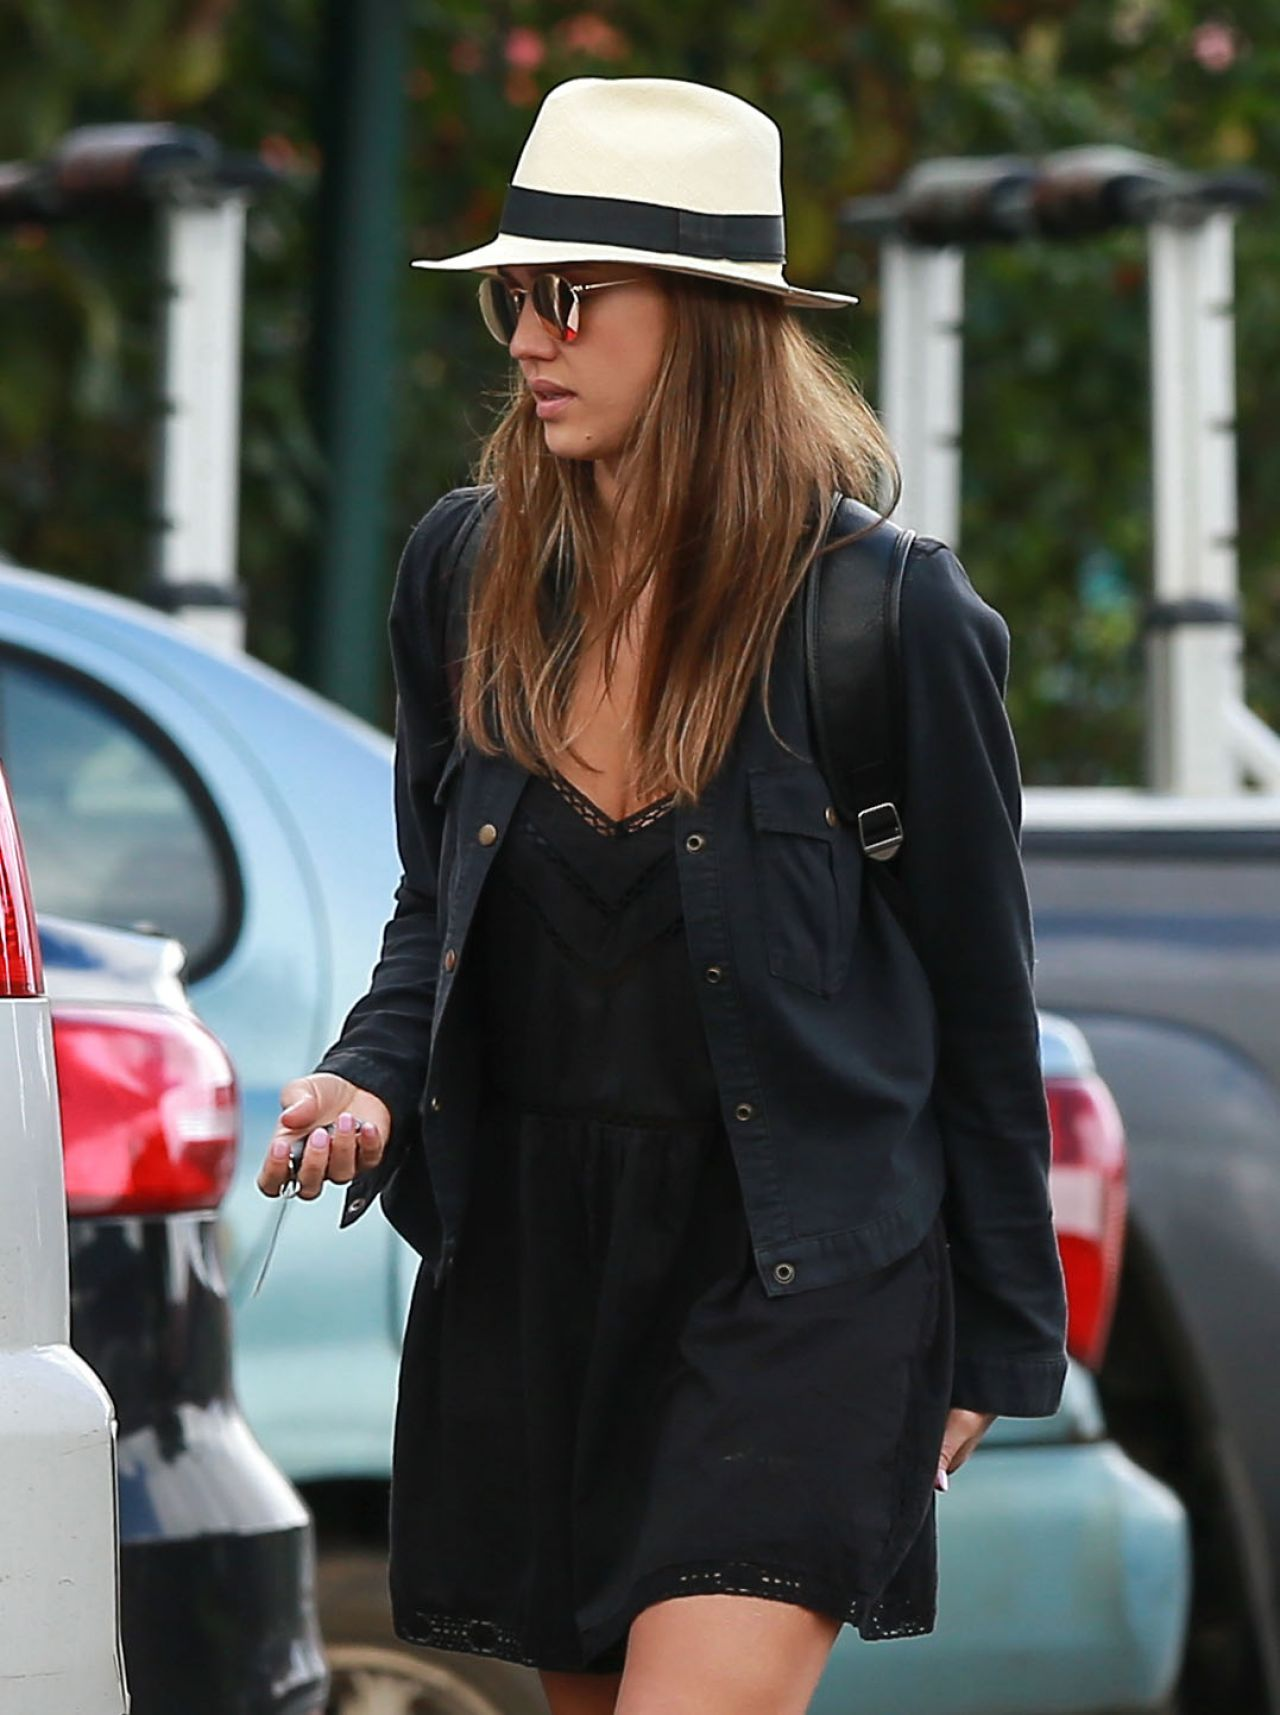 http://celebmafia.com/wp-content/uploads/2016/12/jessica-alba-street-style-grocery-shopping-in-hawaii-12-28-2016-13.jpg